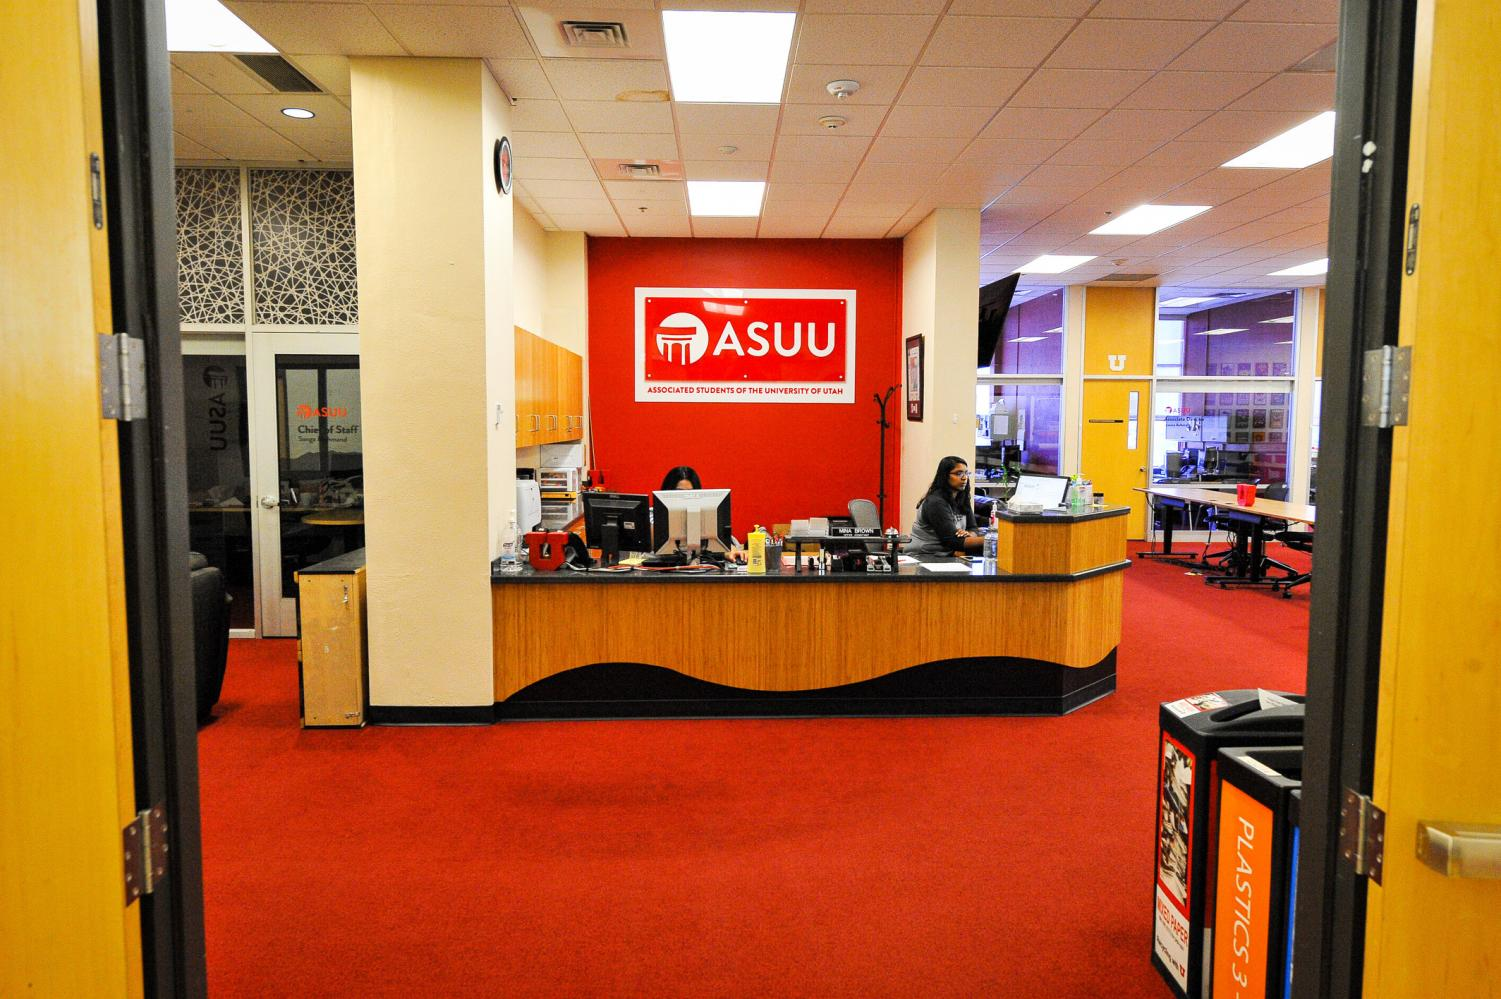 Laura Seymour and Mina Brown at the welcome desk at the ASUU offices in the Ray A. Olpin Student Union on the University of Utah Campus, Salt Lake City, UT on Thursday, July 13, 2017(Photo by Adam Fondren | Daily Utah Chronicle)